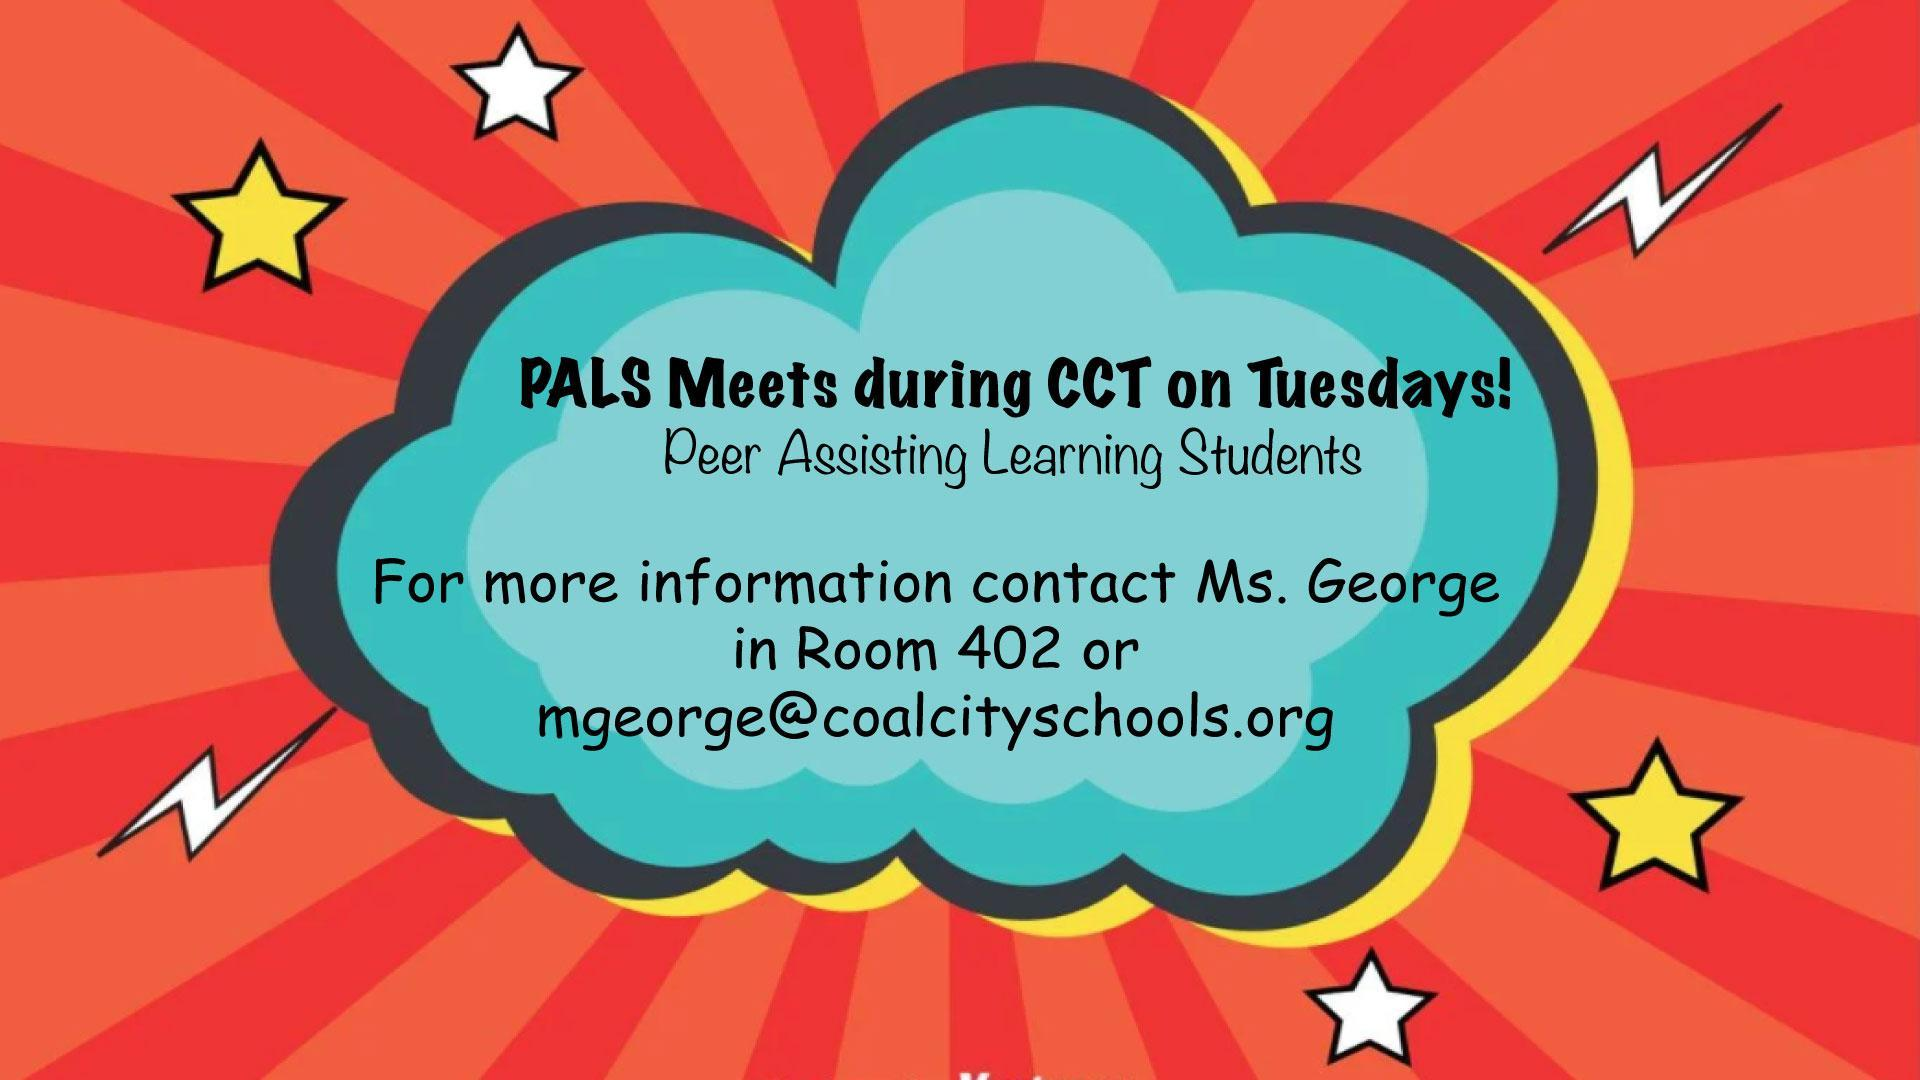 PALS Meetings every Tuesday. Contact Ms. George for more info in room 402